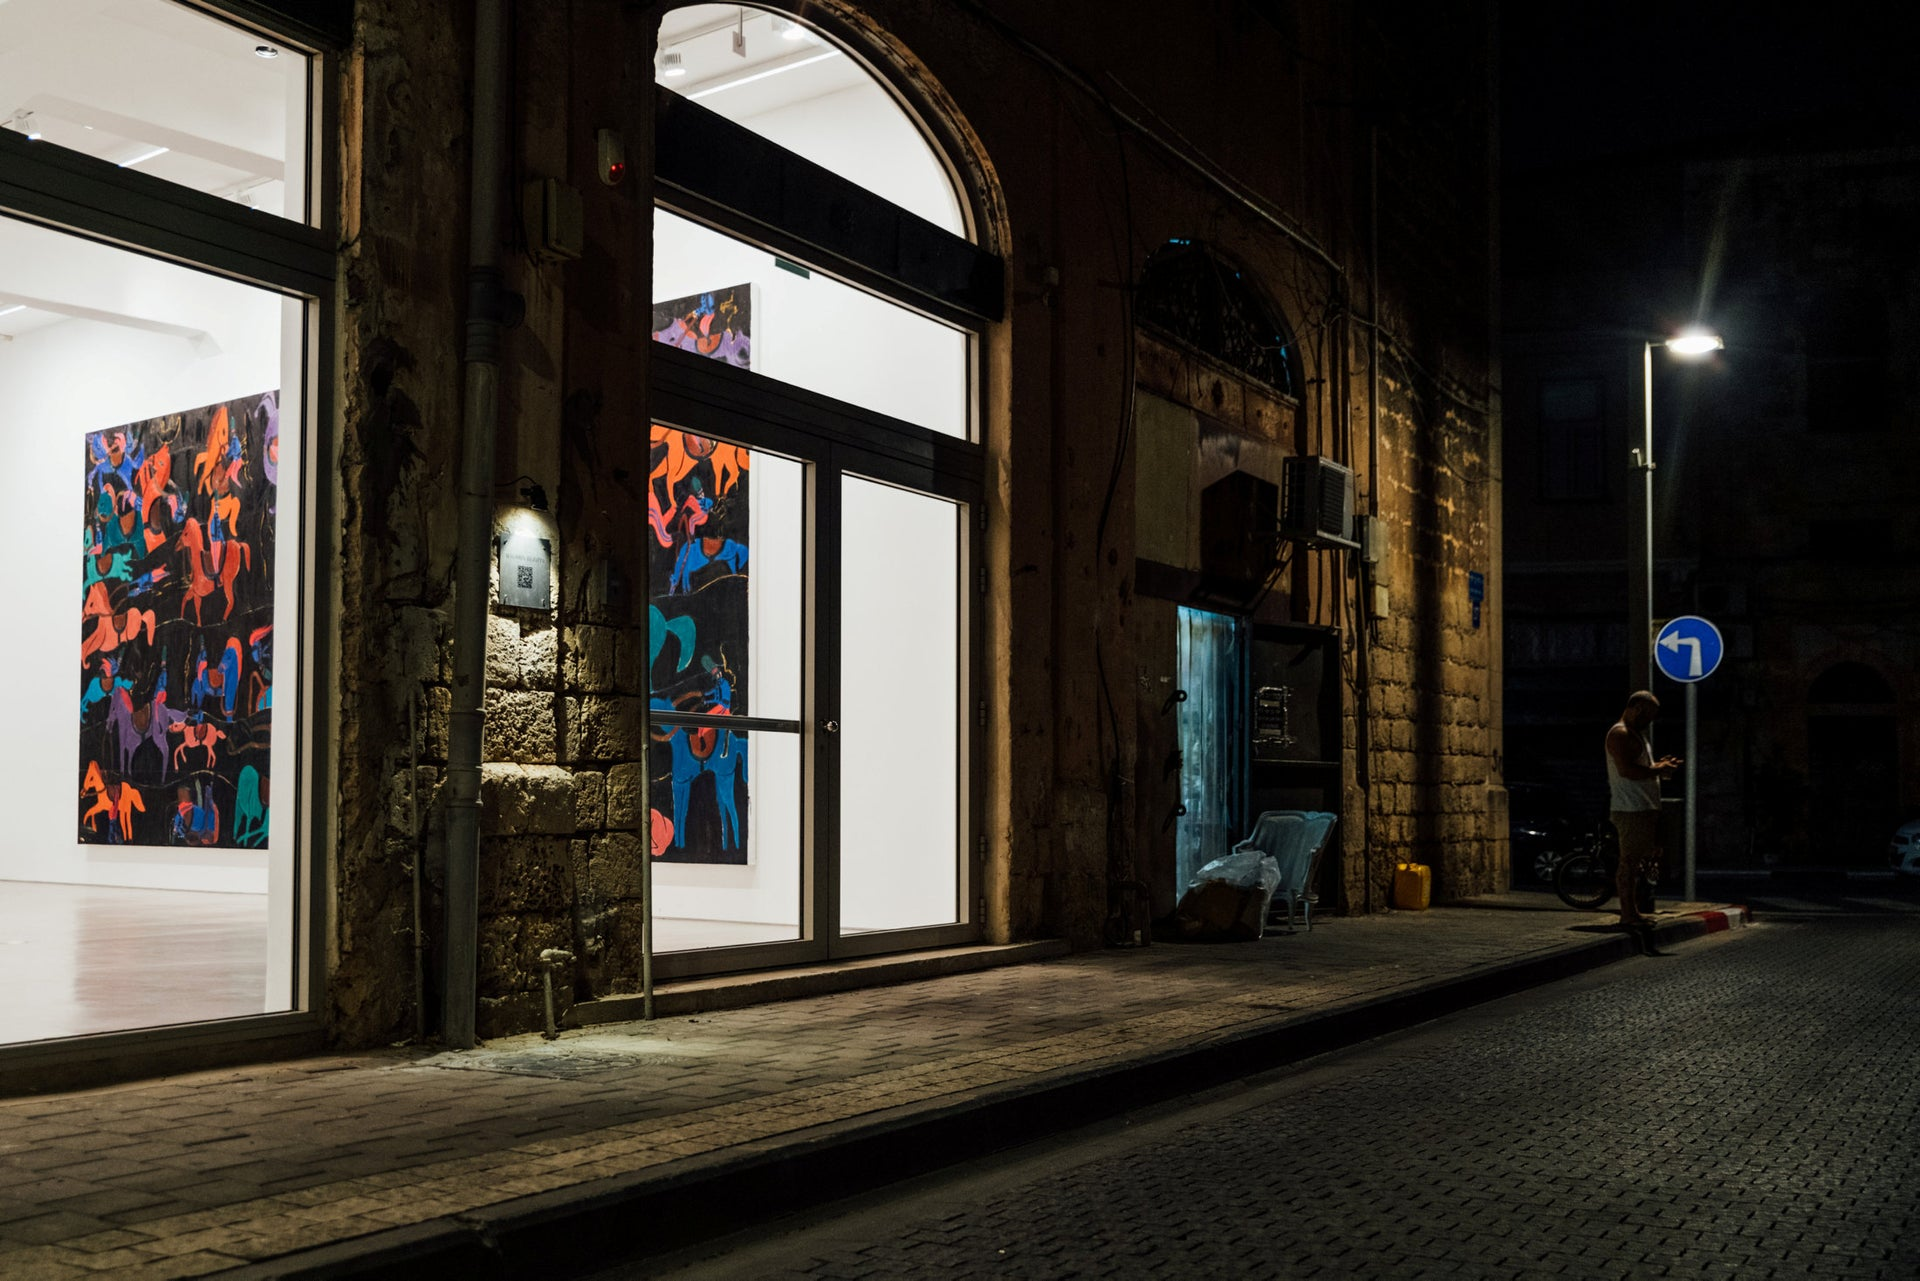 """Magasin III. """"We didn't encounter resistance, but locals are often surprised"""" by the Jaffa gallery, says curator Karmit Galili."""